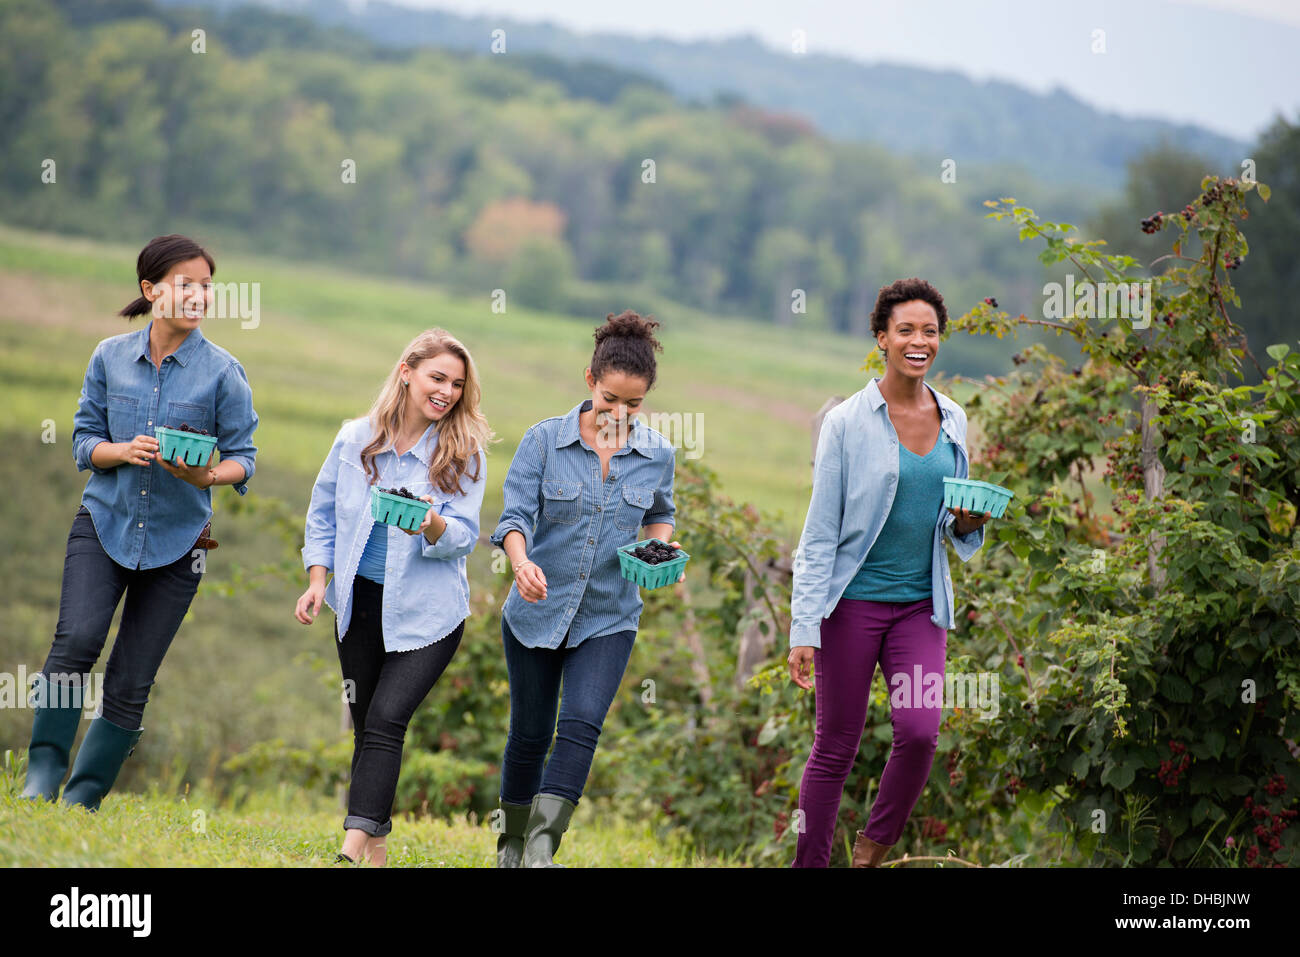 Picking blackberry fruits on an organic farm. Four women walking among the rows of fruit canes. - Stock Image